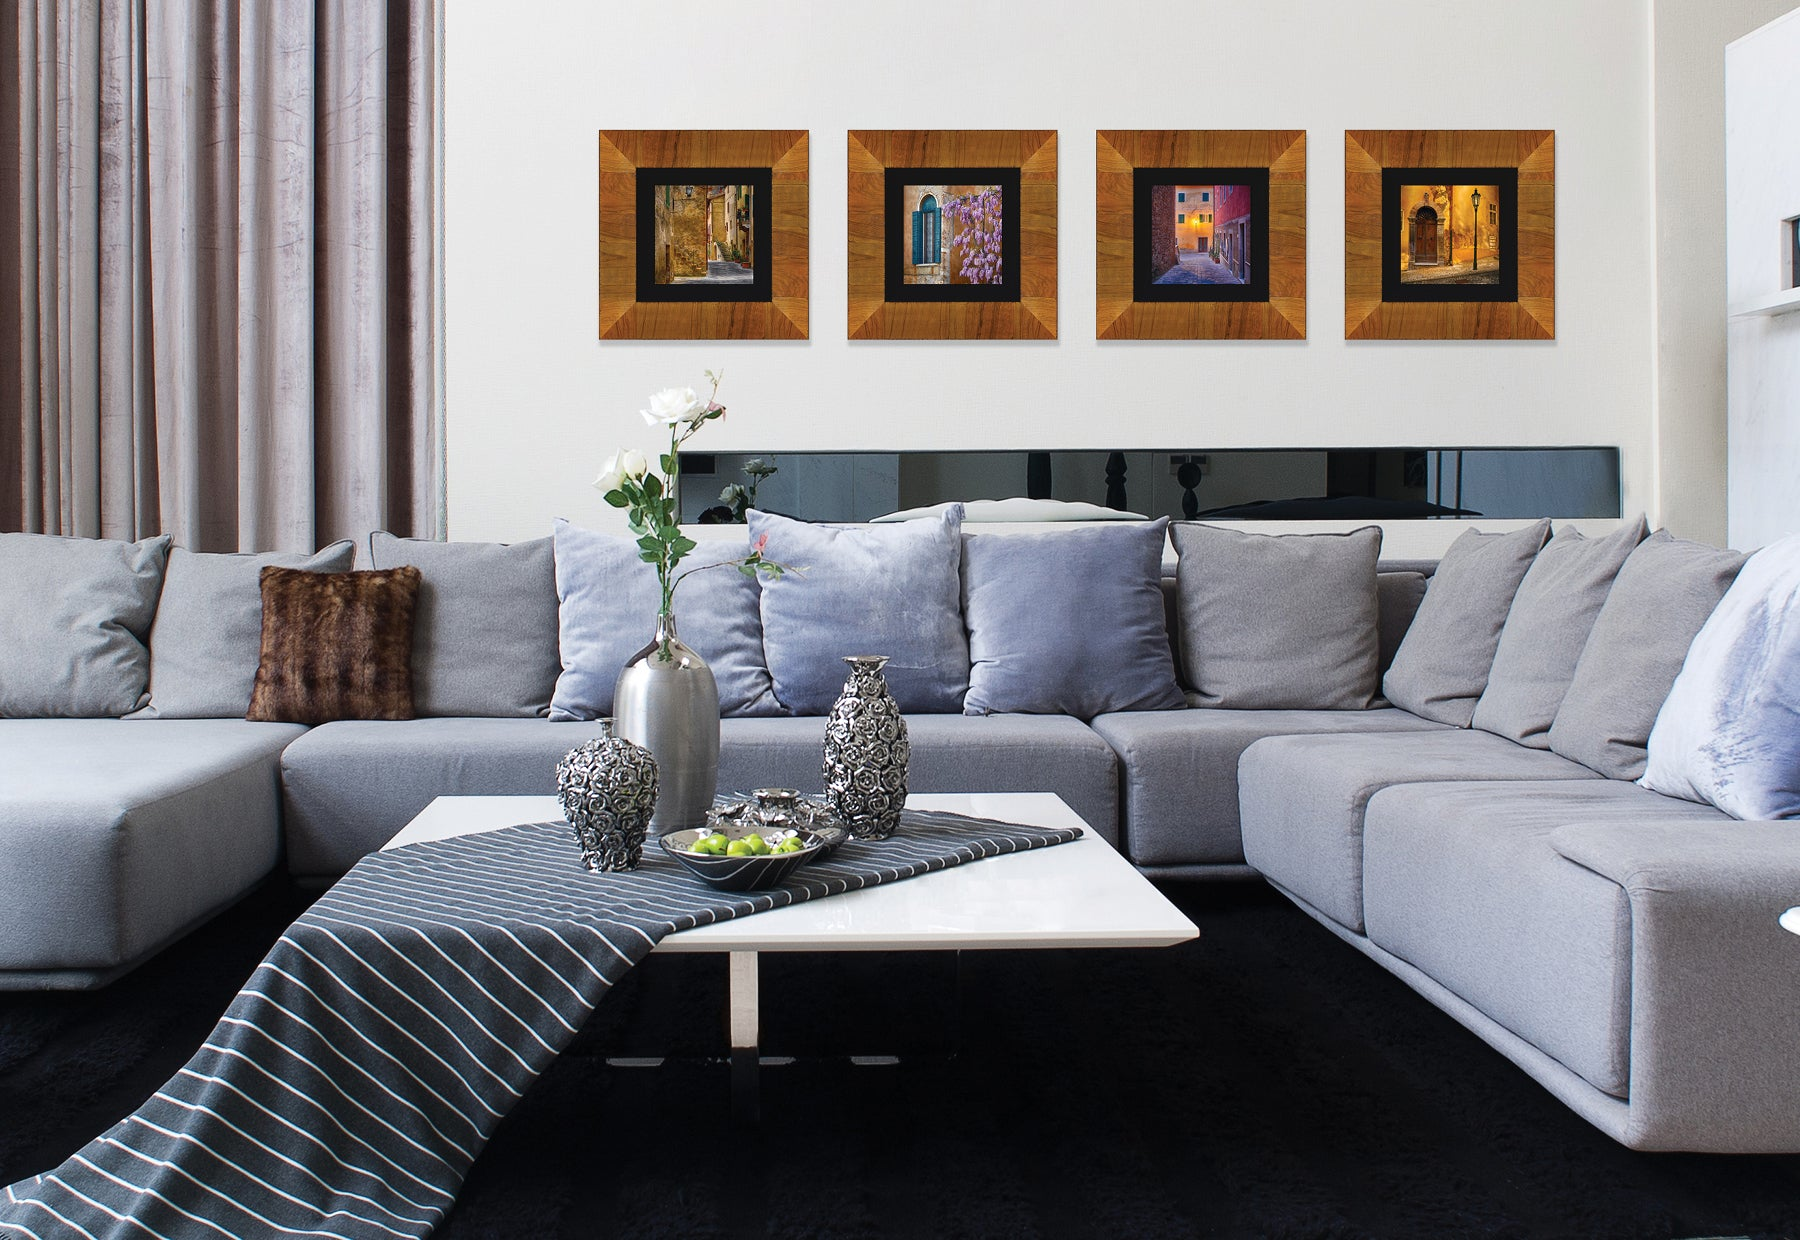 Modern living room with gray couch and white table featuring four framed square photographs of Italy by Peter Lik in light brown frames with black linen liners